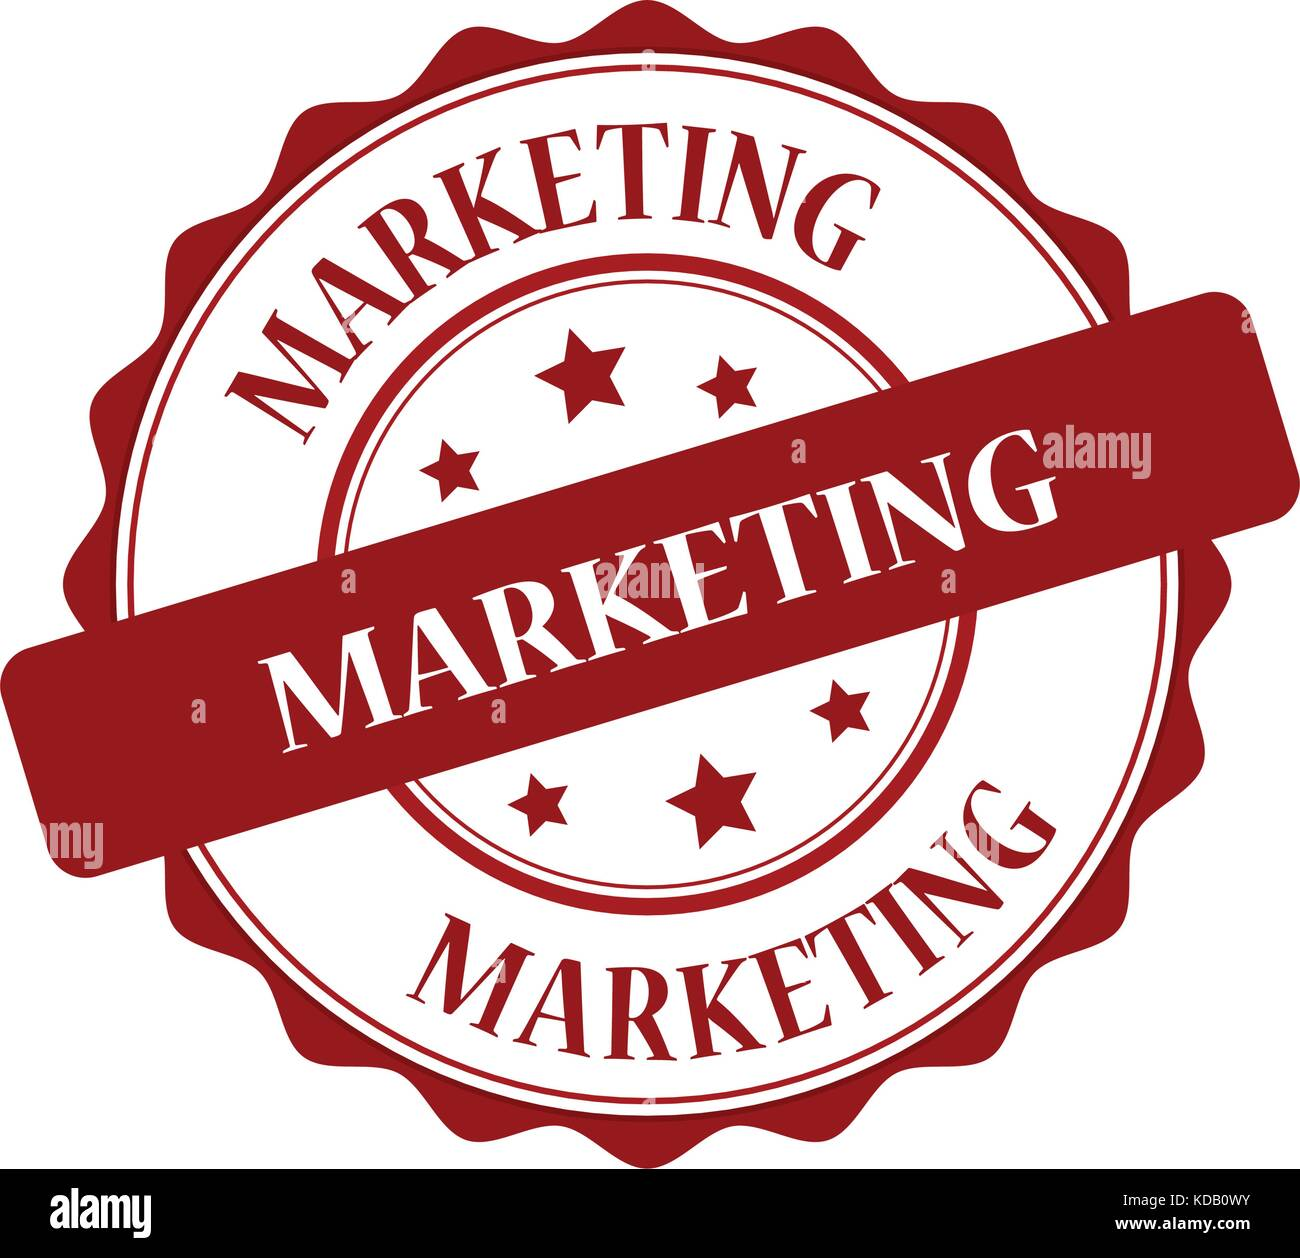 Marketing red stamp illustration - Stock Image